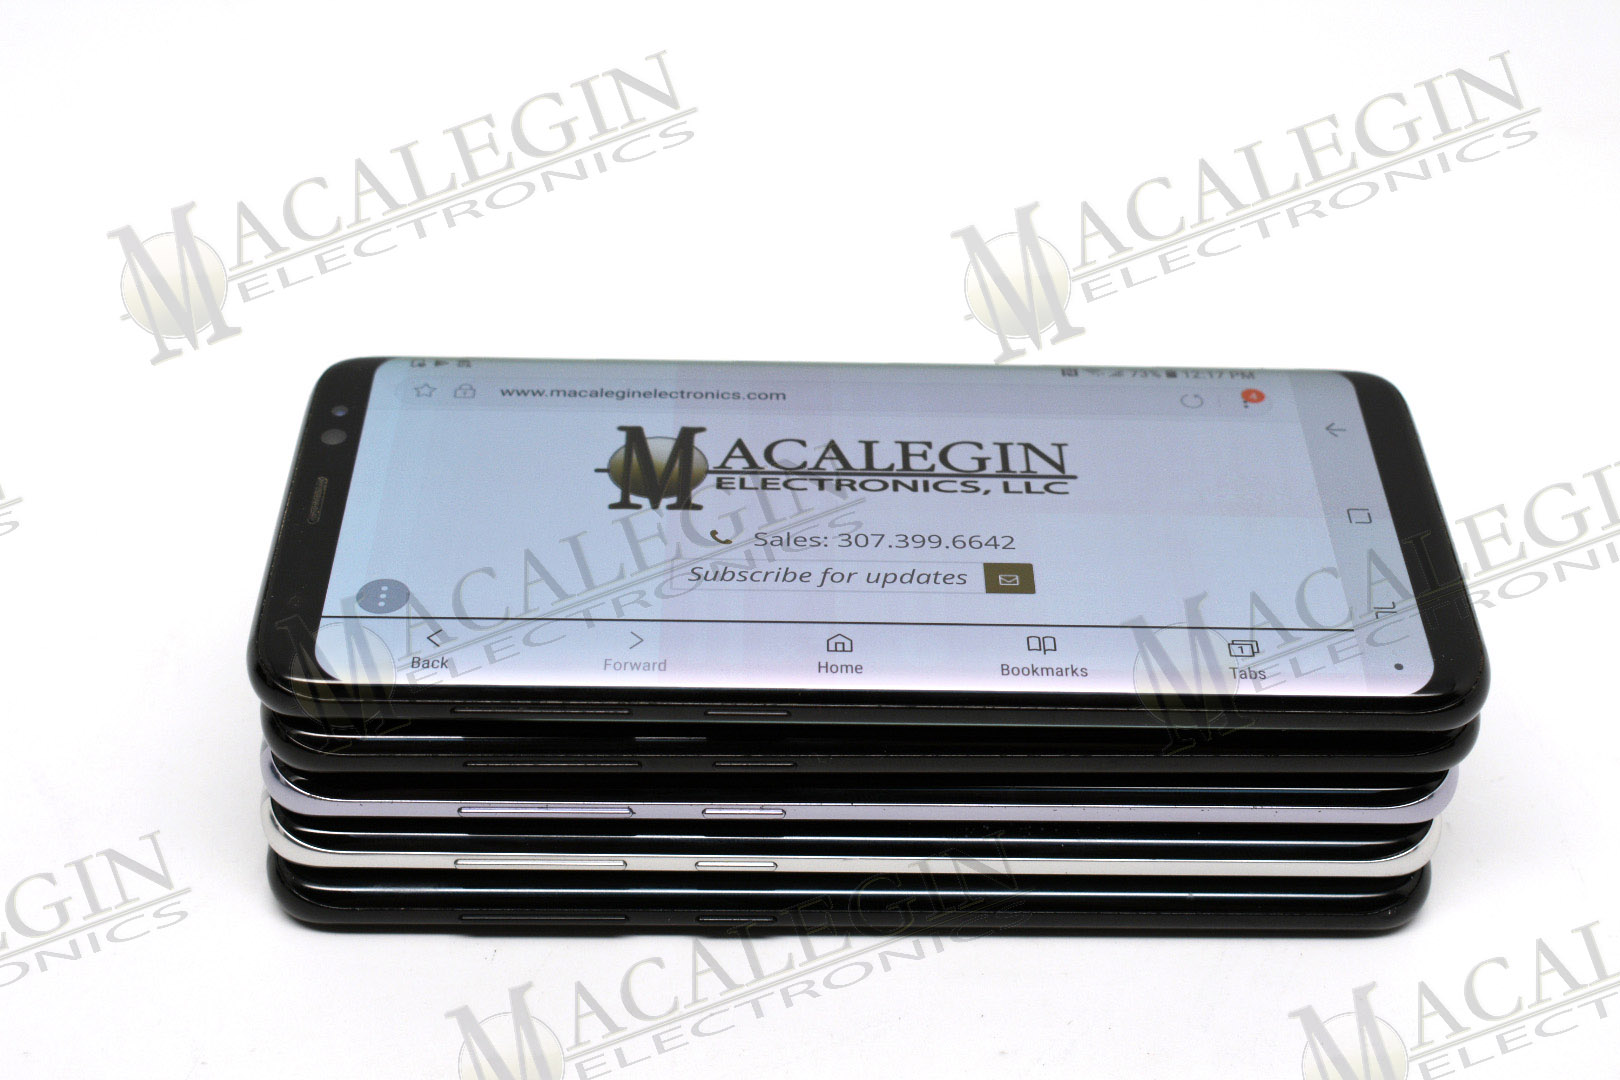 Used SAMSUNG SM-G950W GALAXY S8 UNLOCKED in PFL condition for sale from Macalegin Electronics at $172 a piece.